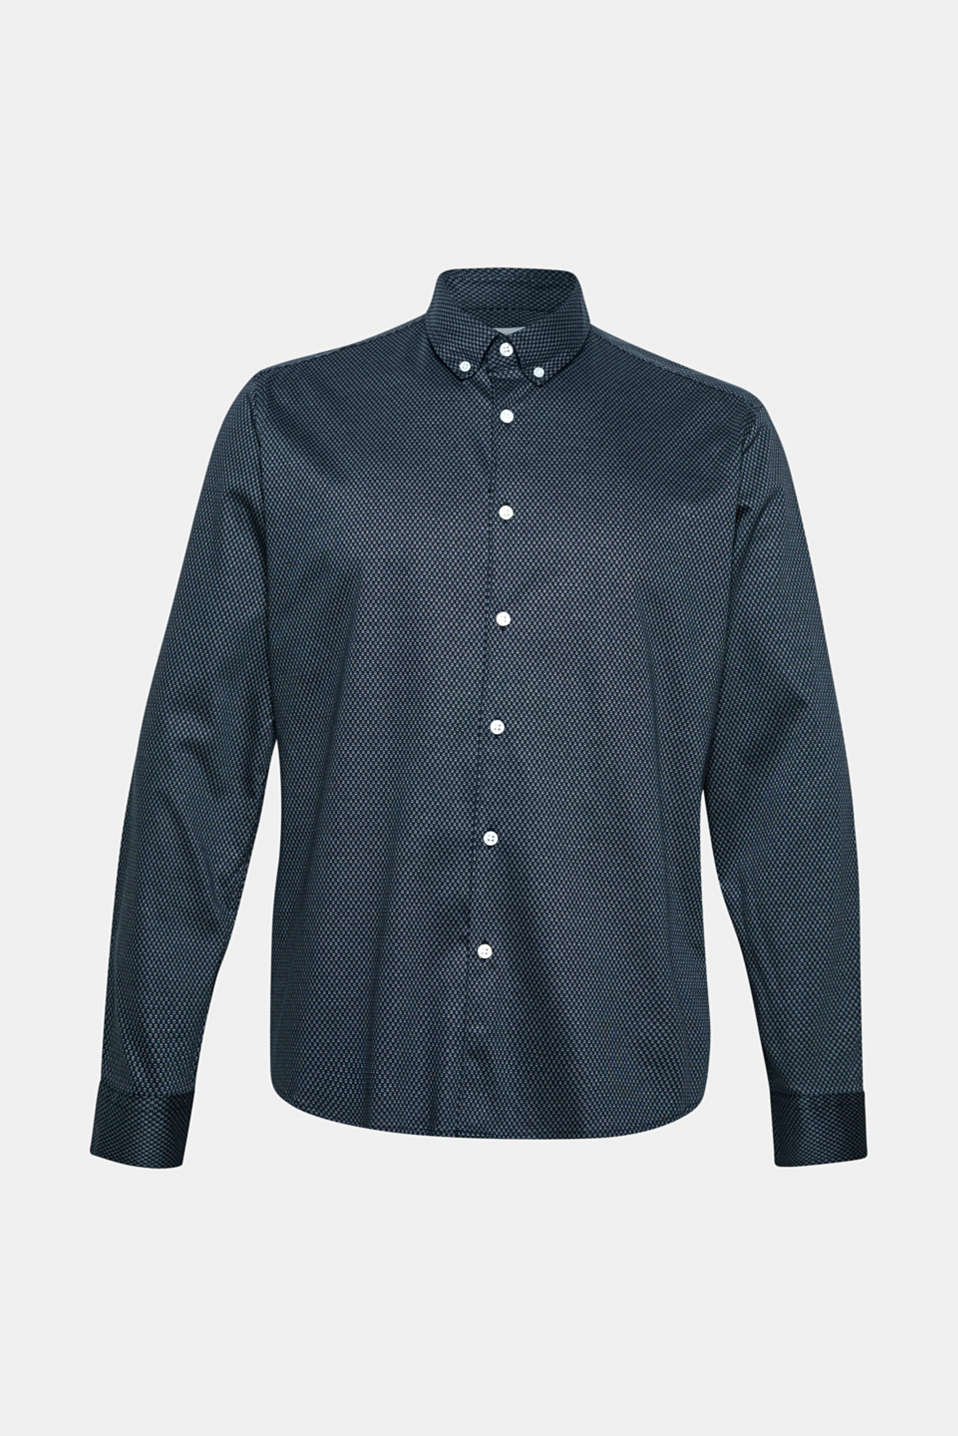 Shirt with a diamond pattern, 100% cotton, NAVY, detail image number 7